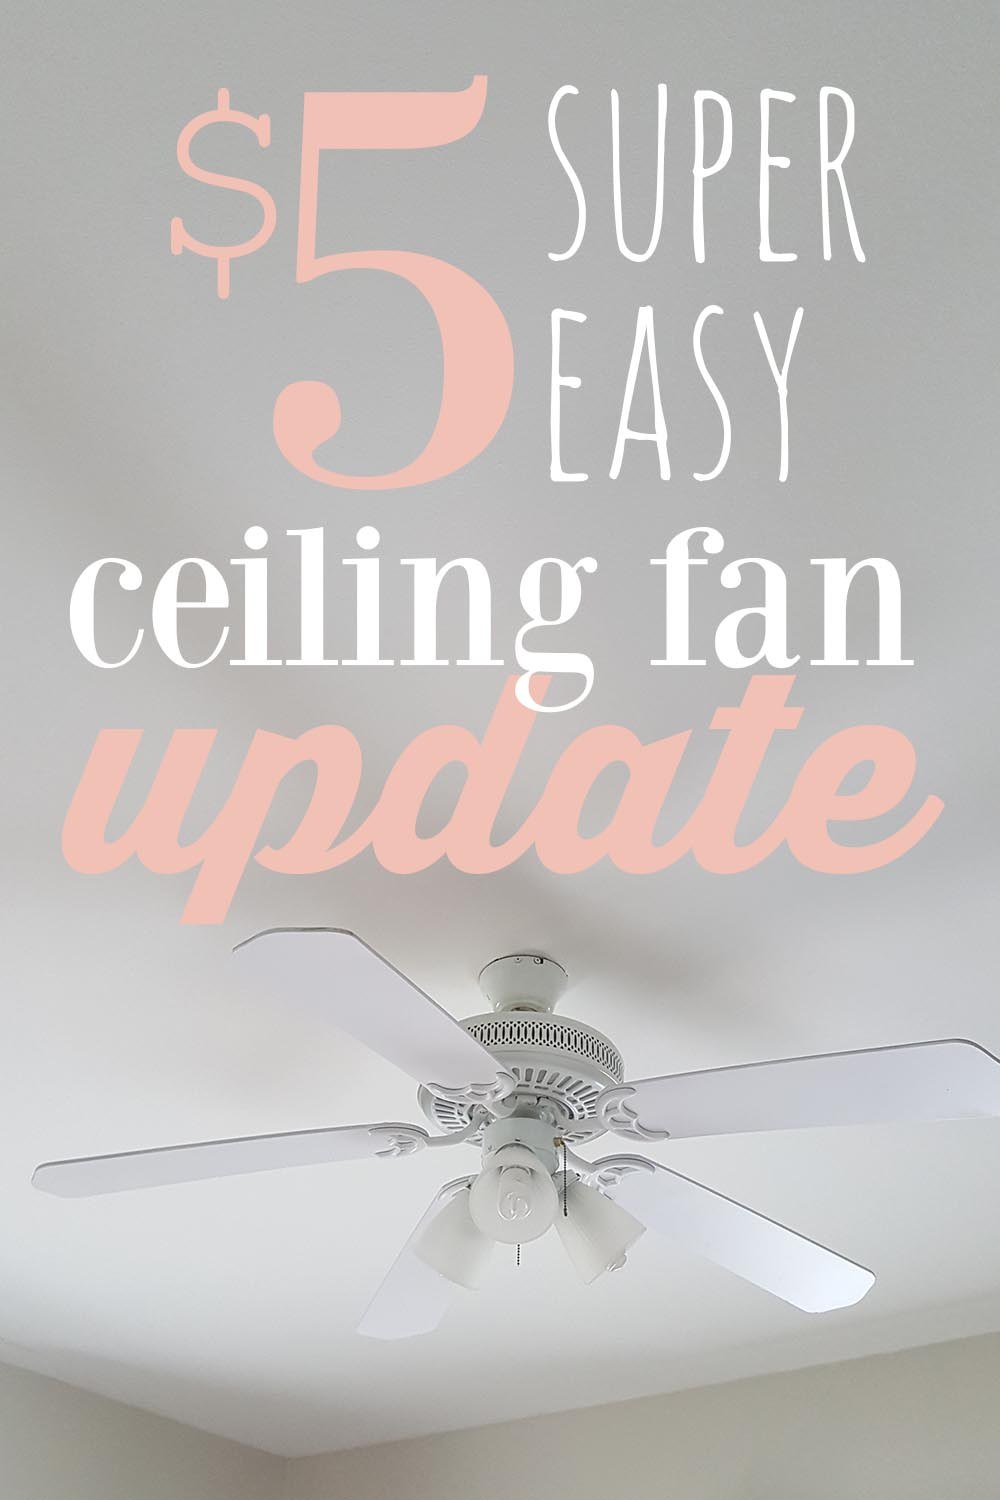 $5 ceiling fan update